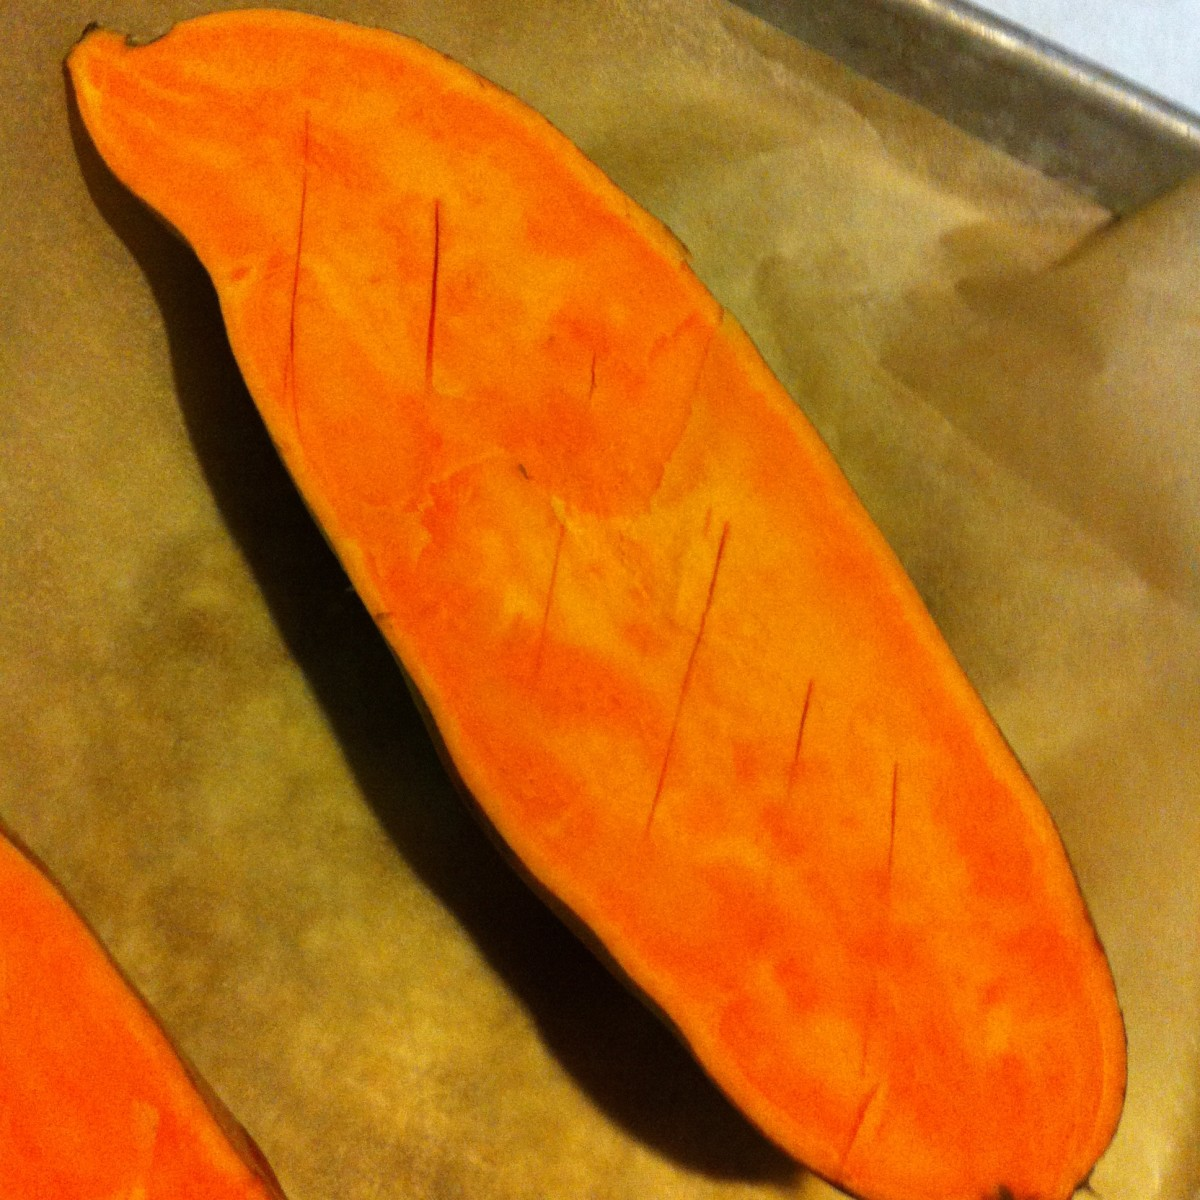 A sweet potato before cooking: the interior flesh has been scored in order to expose more of its surface area to heat while roasting.